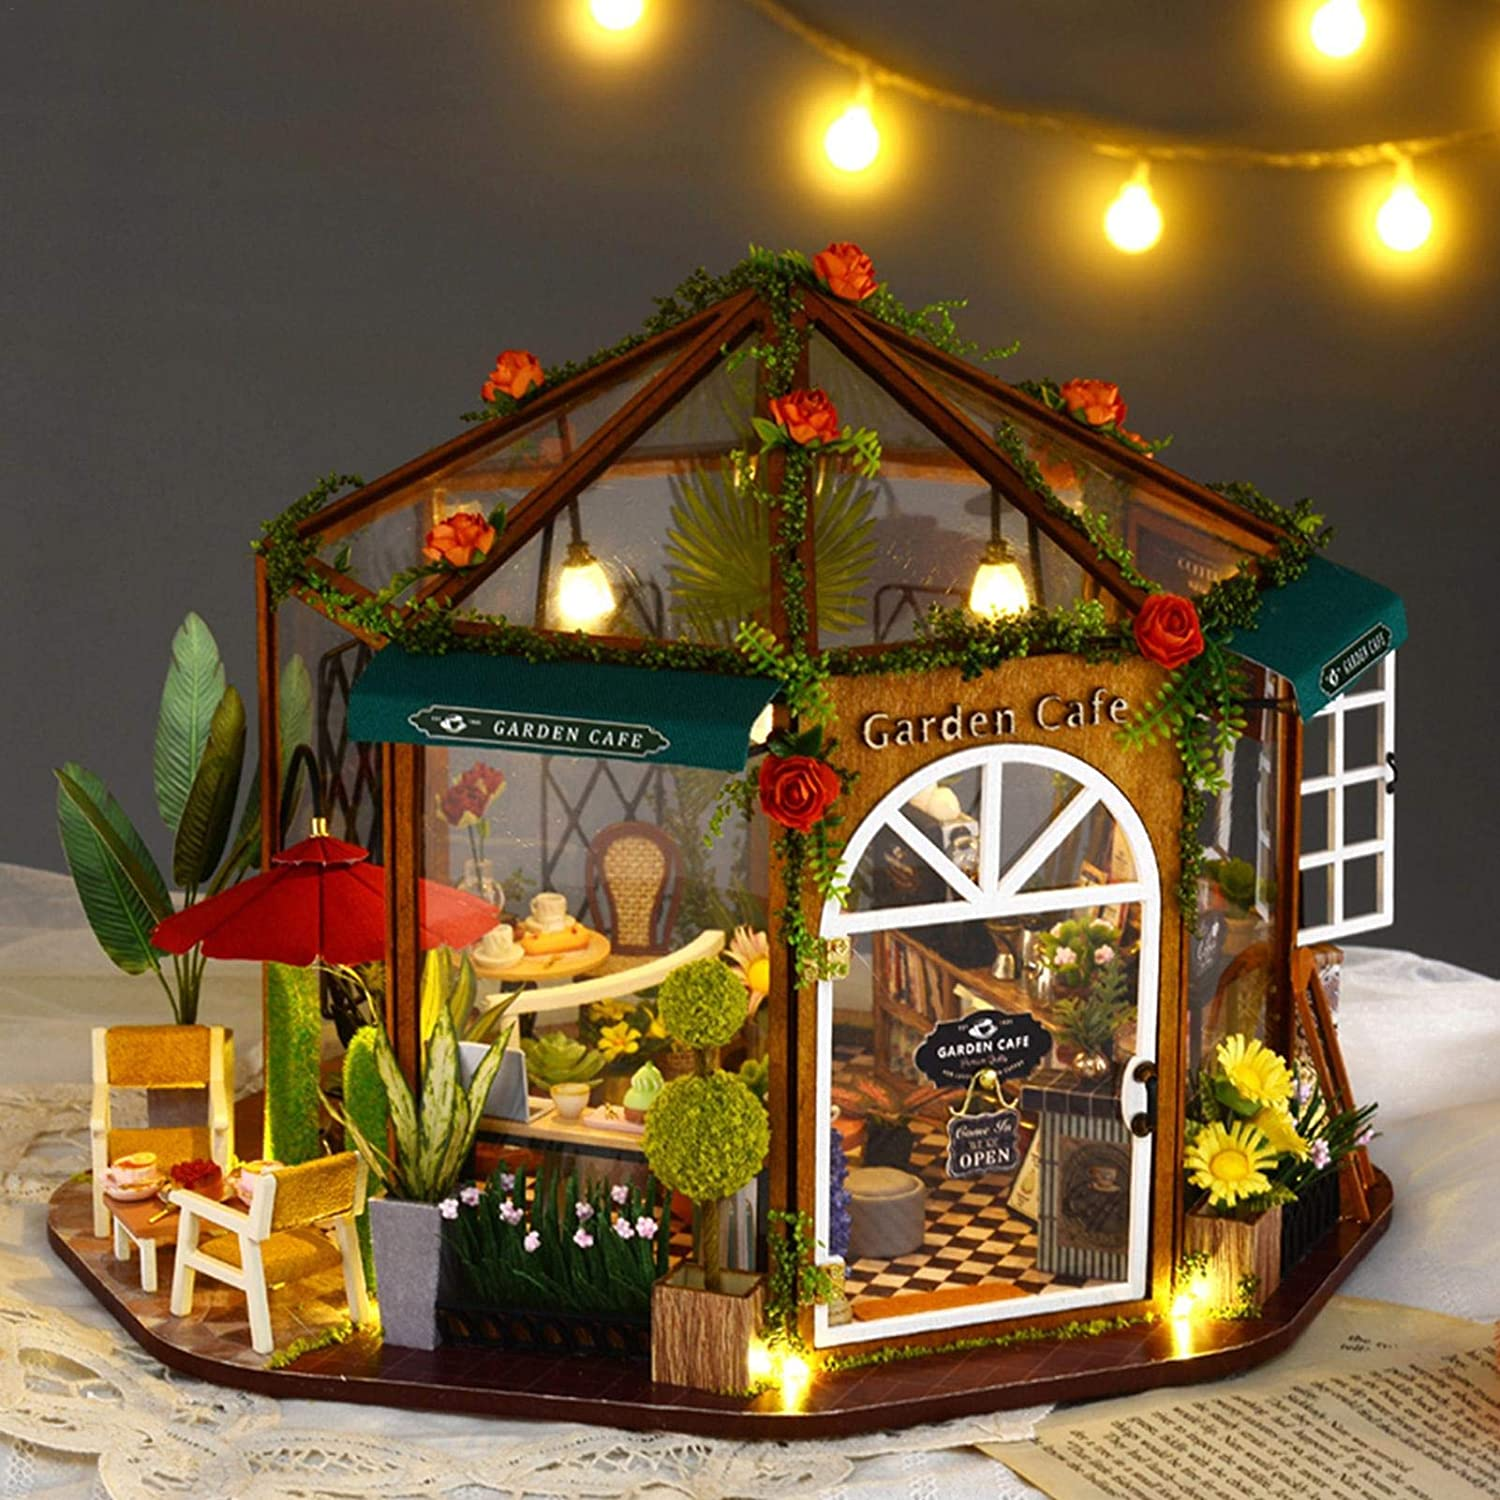 N\C Dollhouse Miniature with Furniture, Garden Cafe 3D DIY House Kit Puzzle Toys, 1:24 Scale Creative Room Christmas Birthday Gift for Kids & Dollhouse Lovers